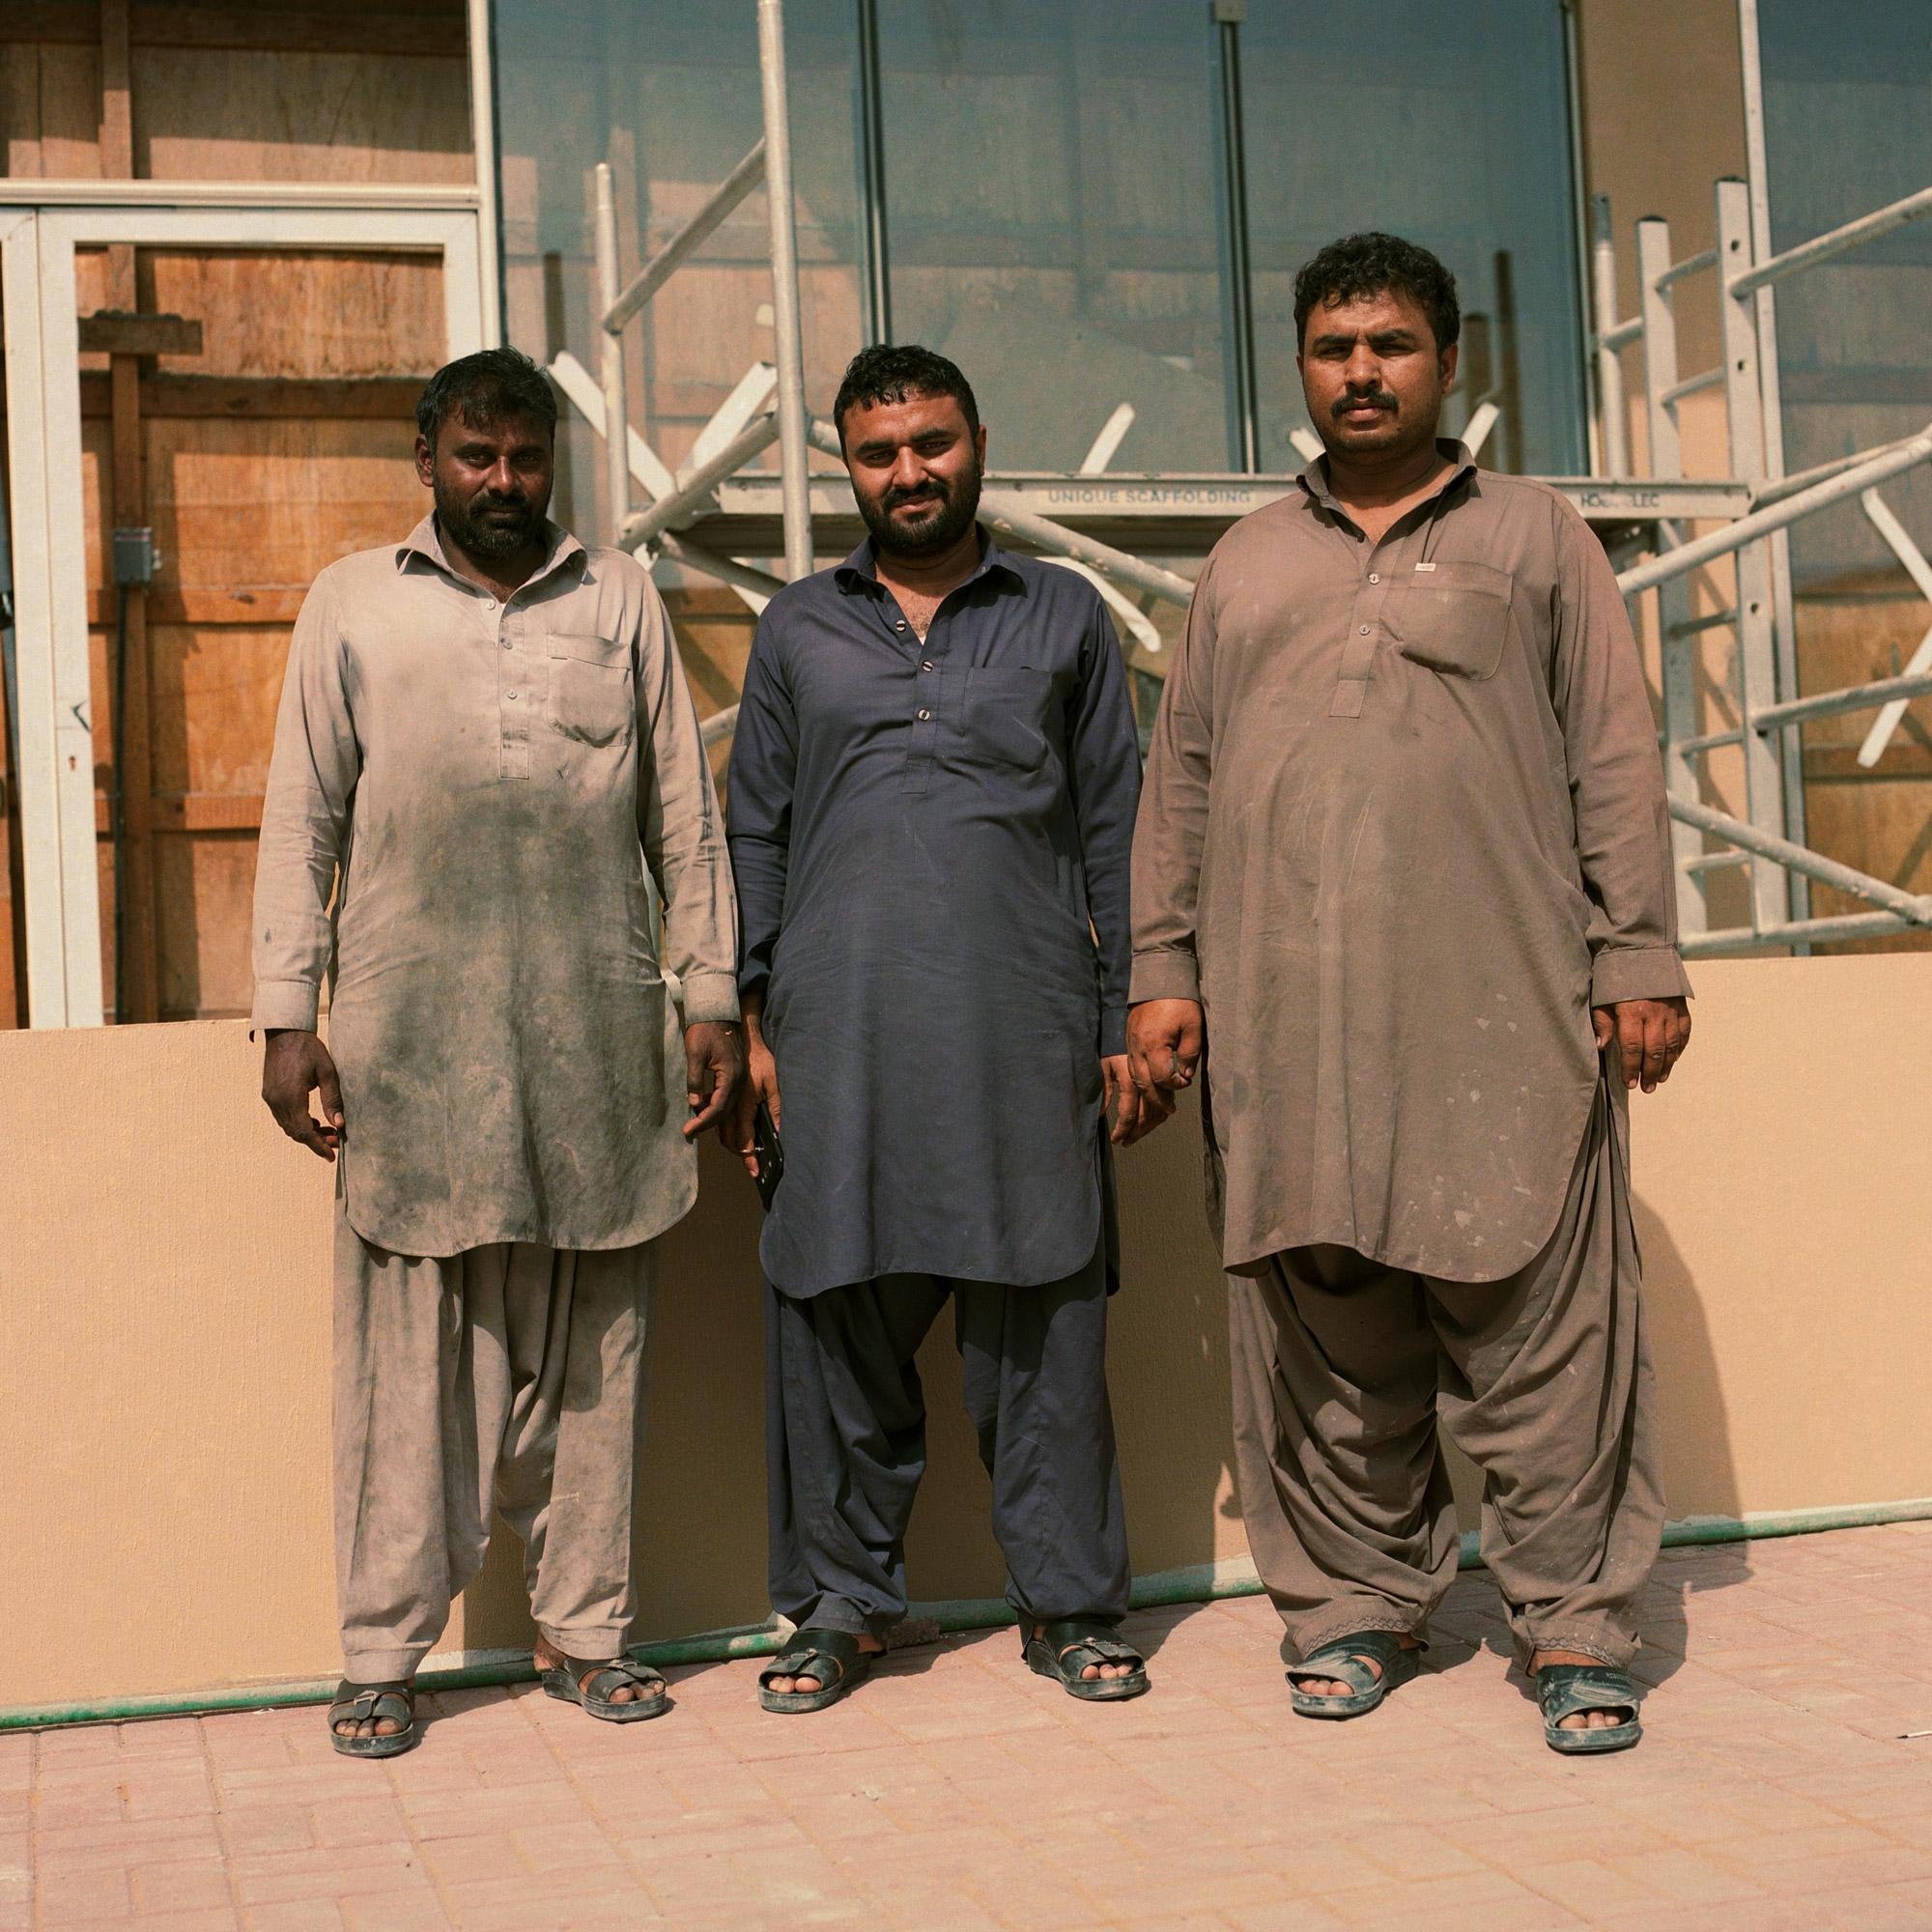 Dirty Clothes, three Indian construction workers in front of construction site in traditional workwear. Dubai Labourers.